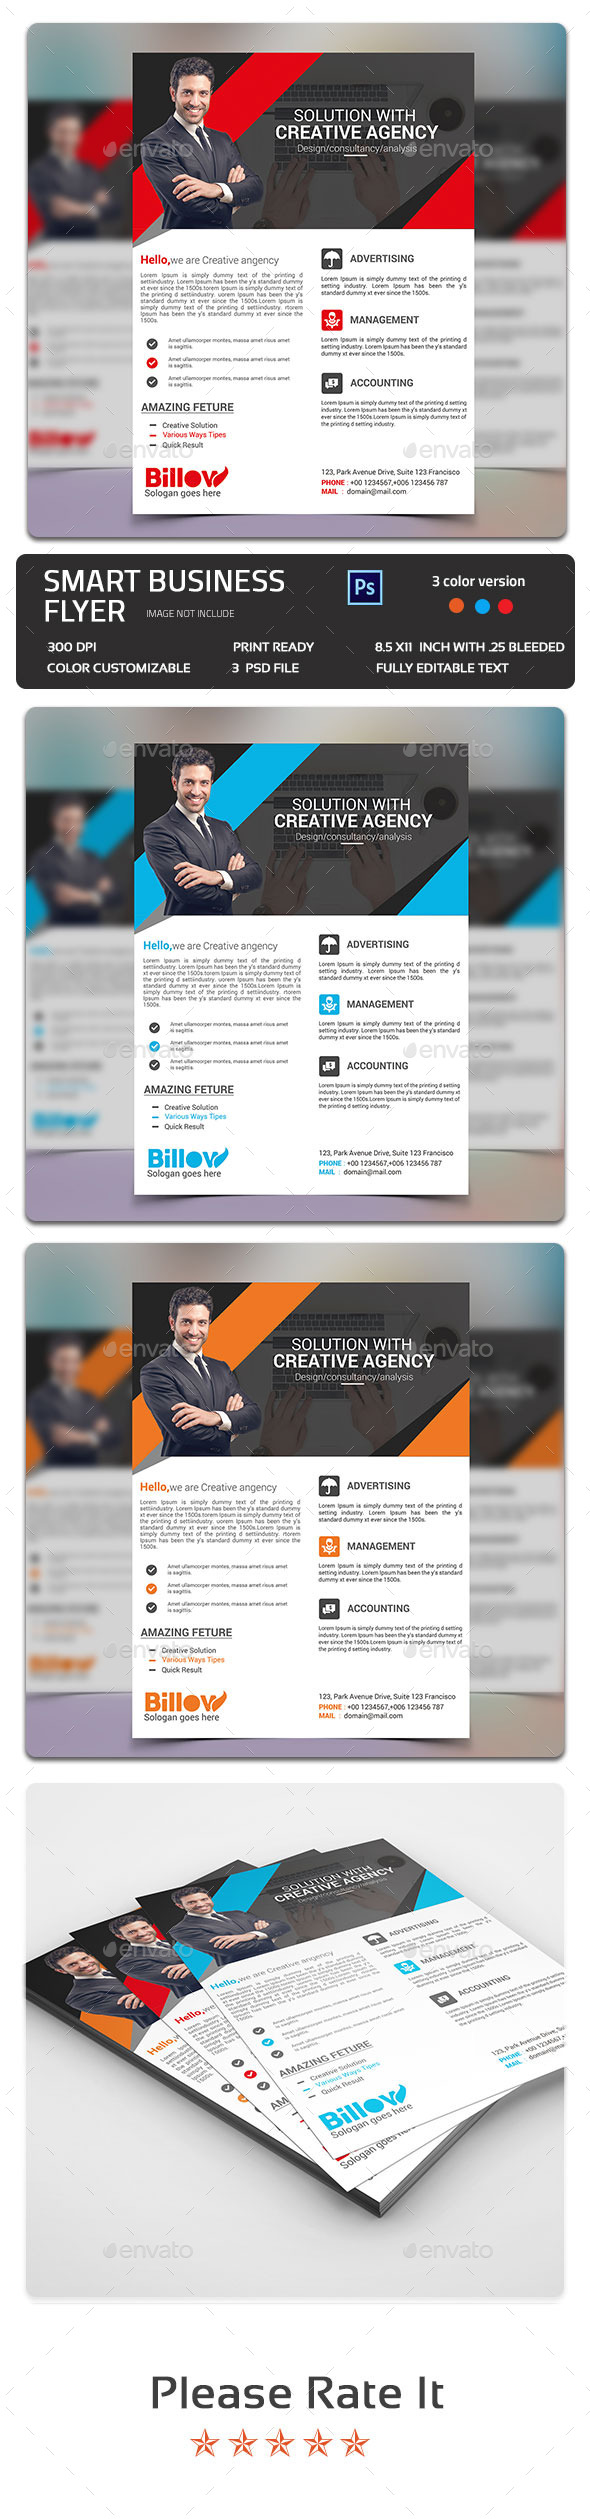 Smart Business Flyer - Flyers Print Templates